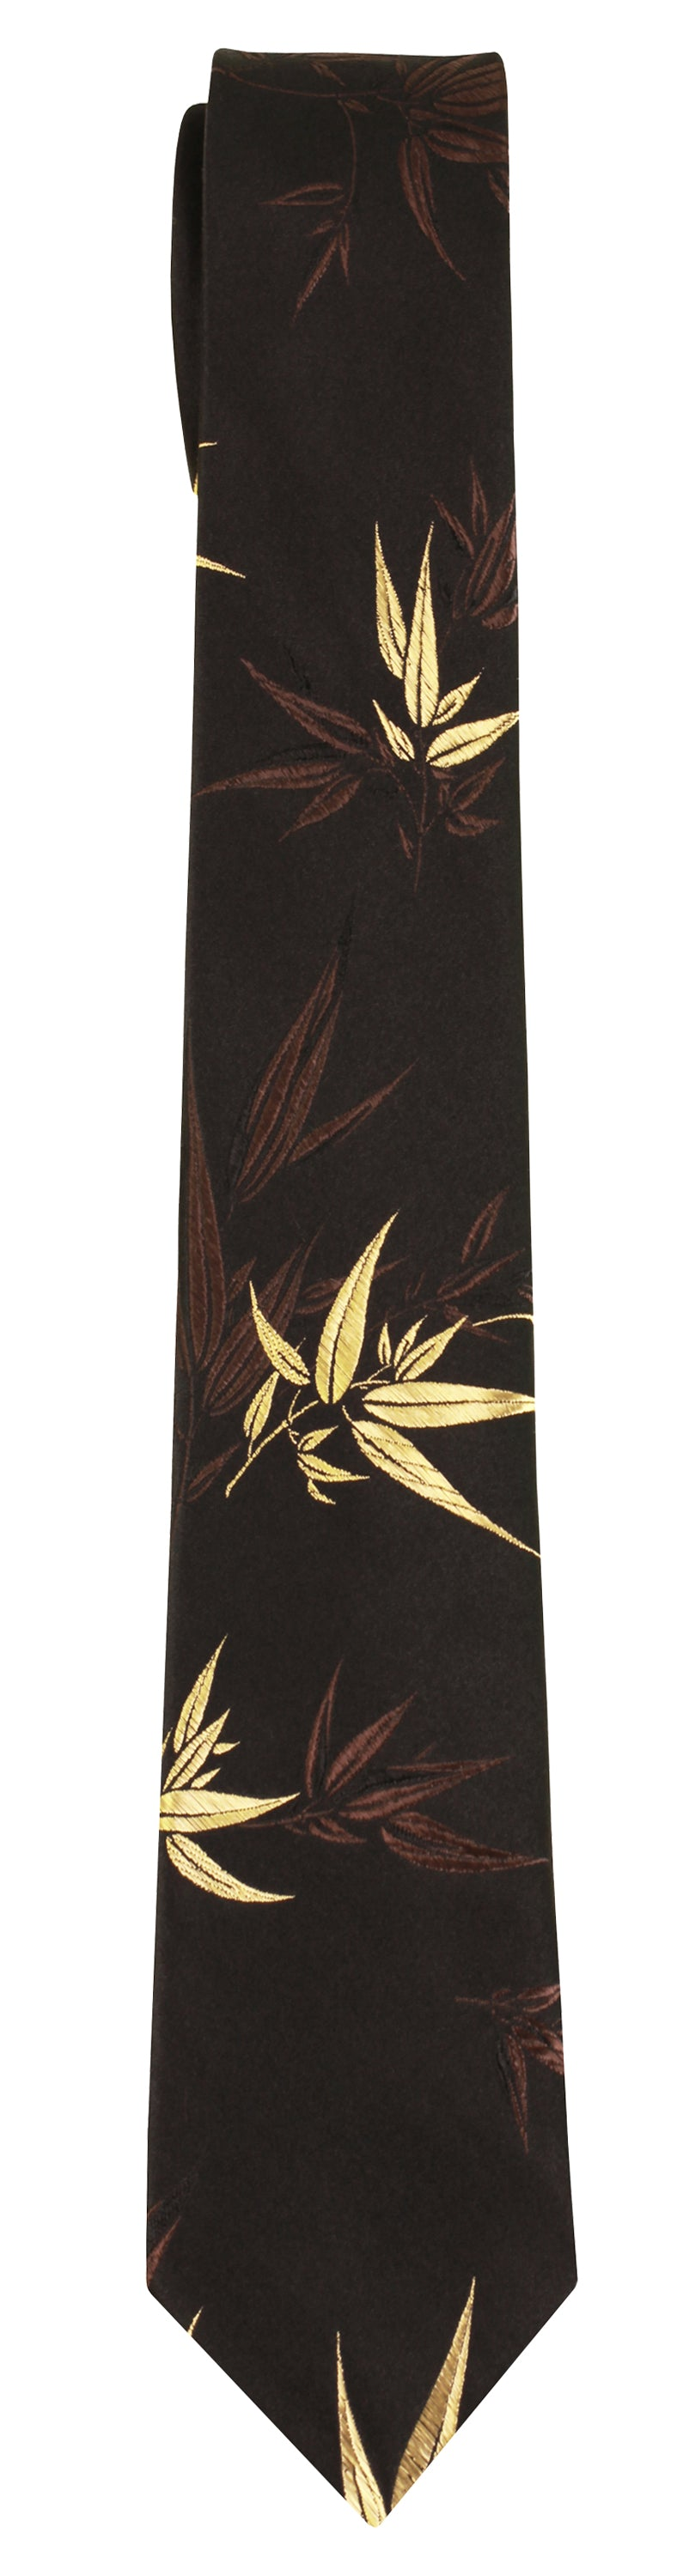 Mimi Fong Bamboo Tie in Black & Gold